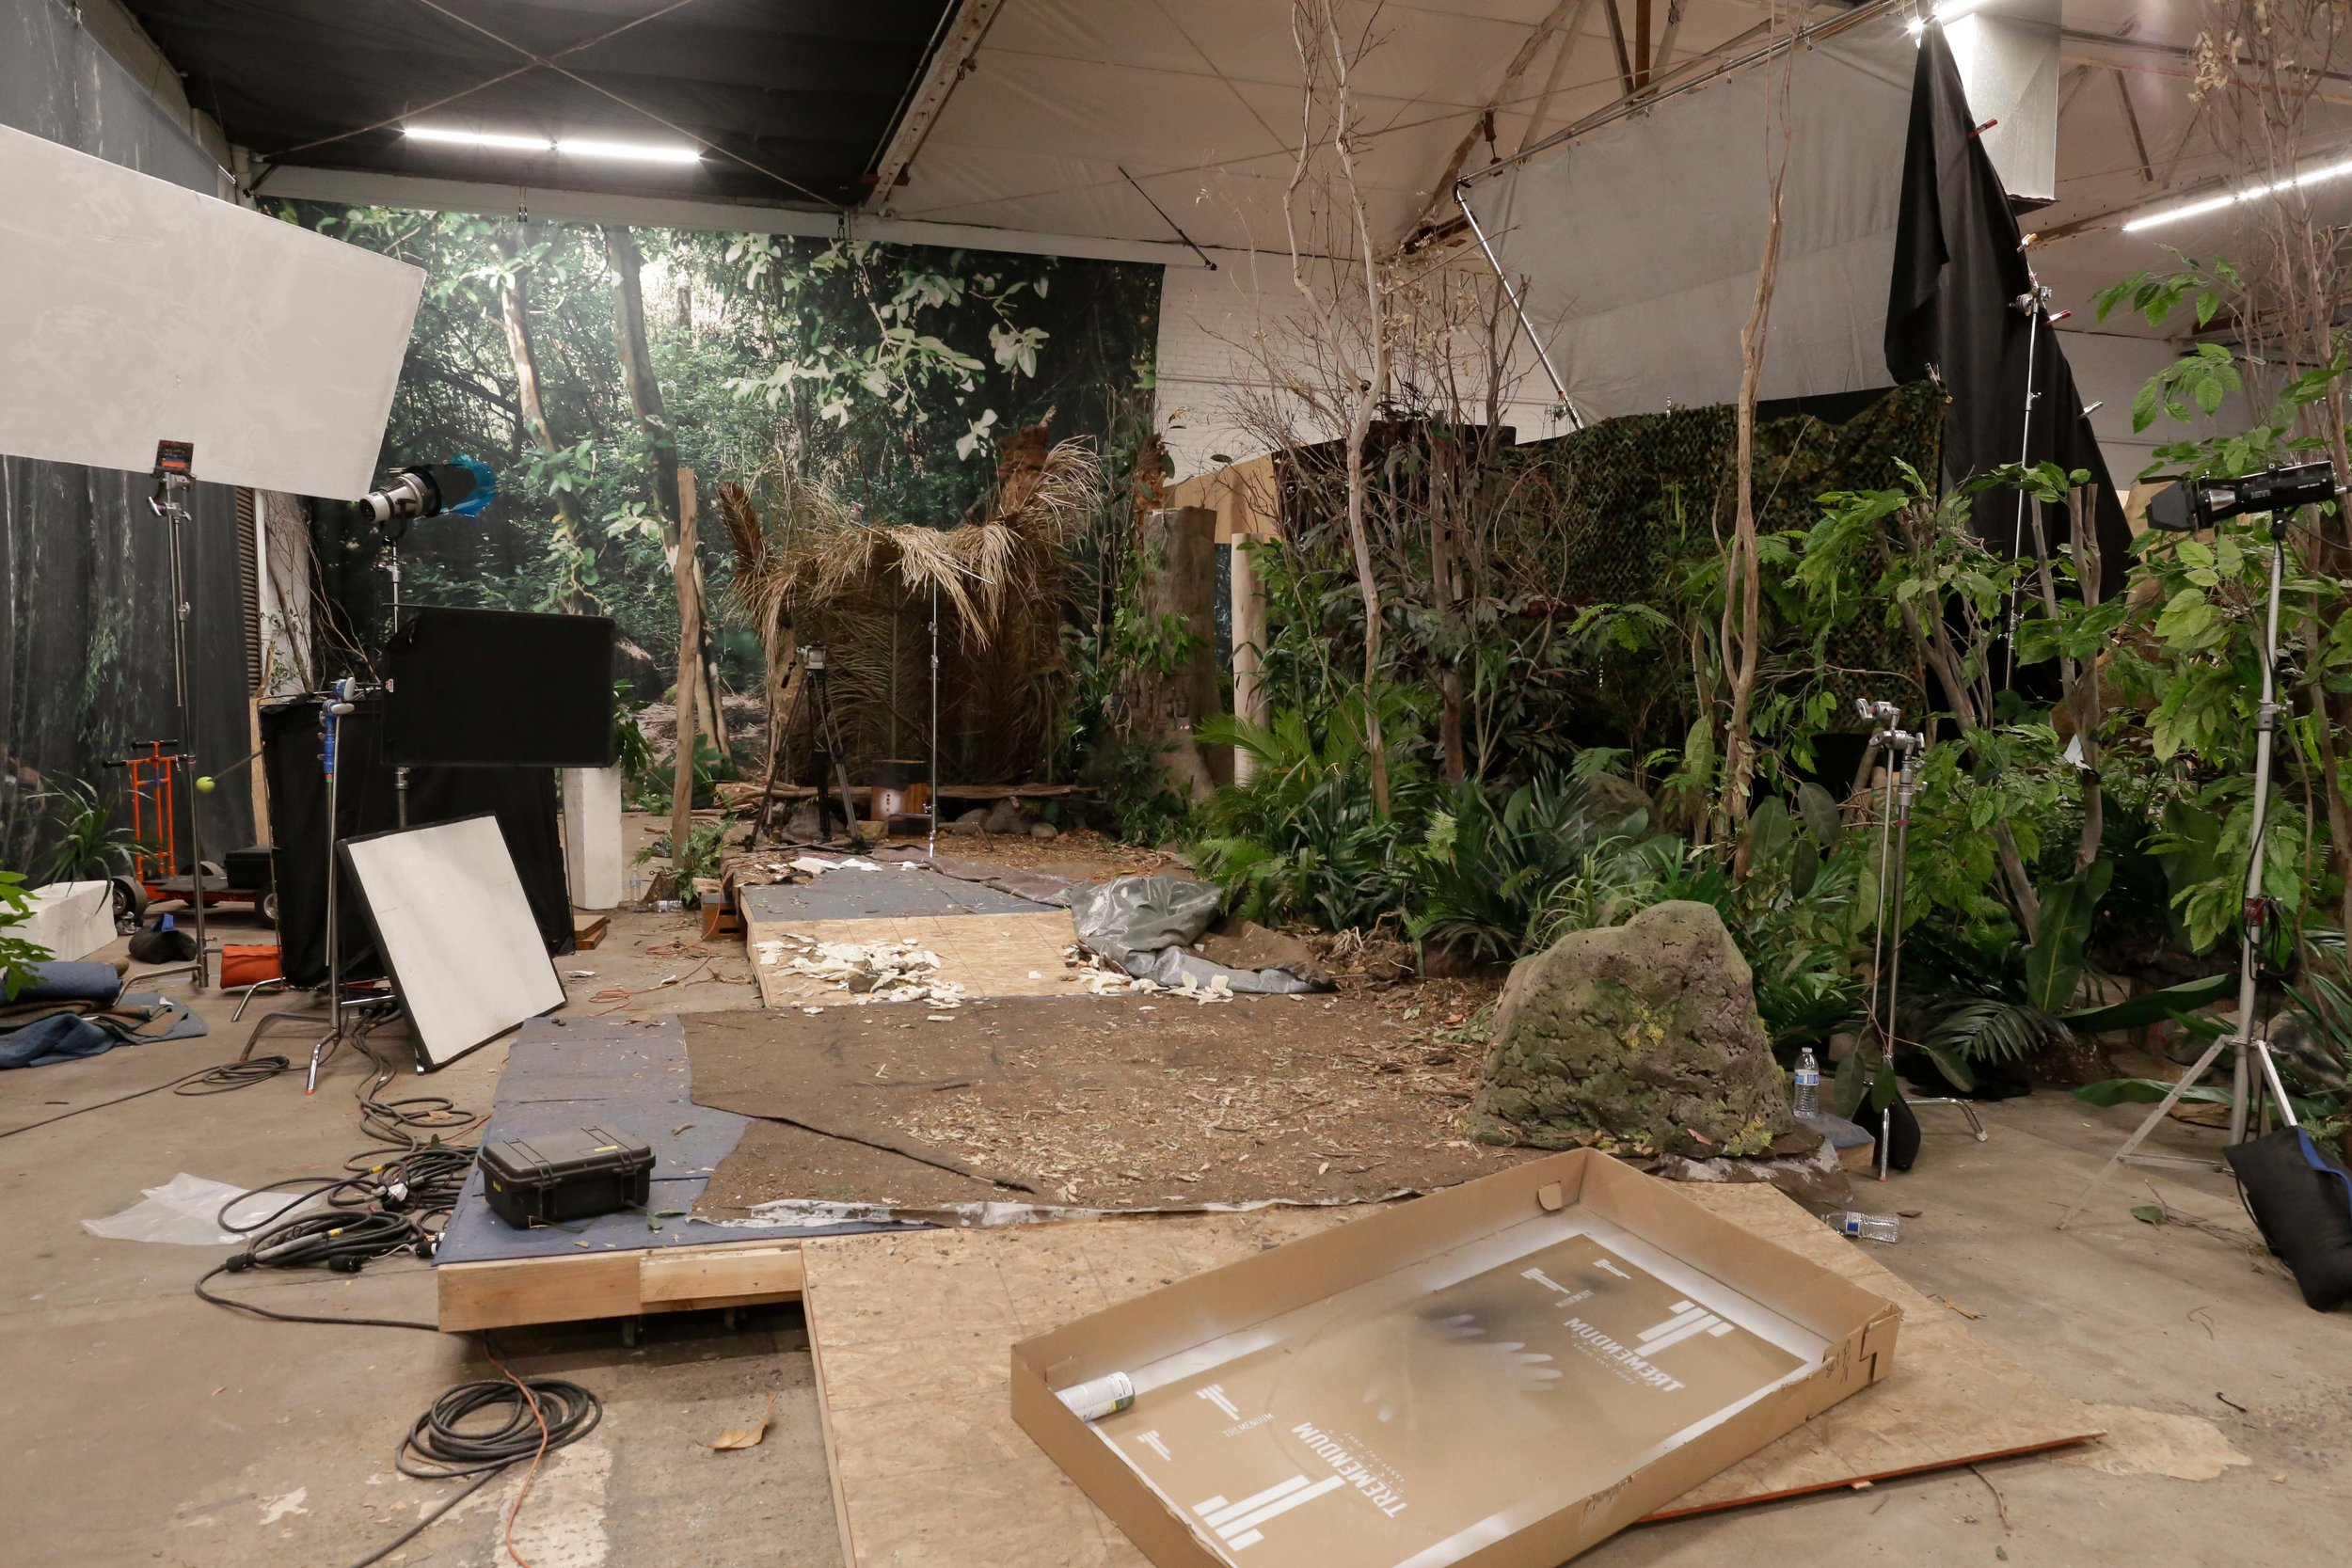 Wide, brightly lit view of our studio jungle with all its parts. Aka, how you should never see our studio jungle.